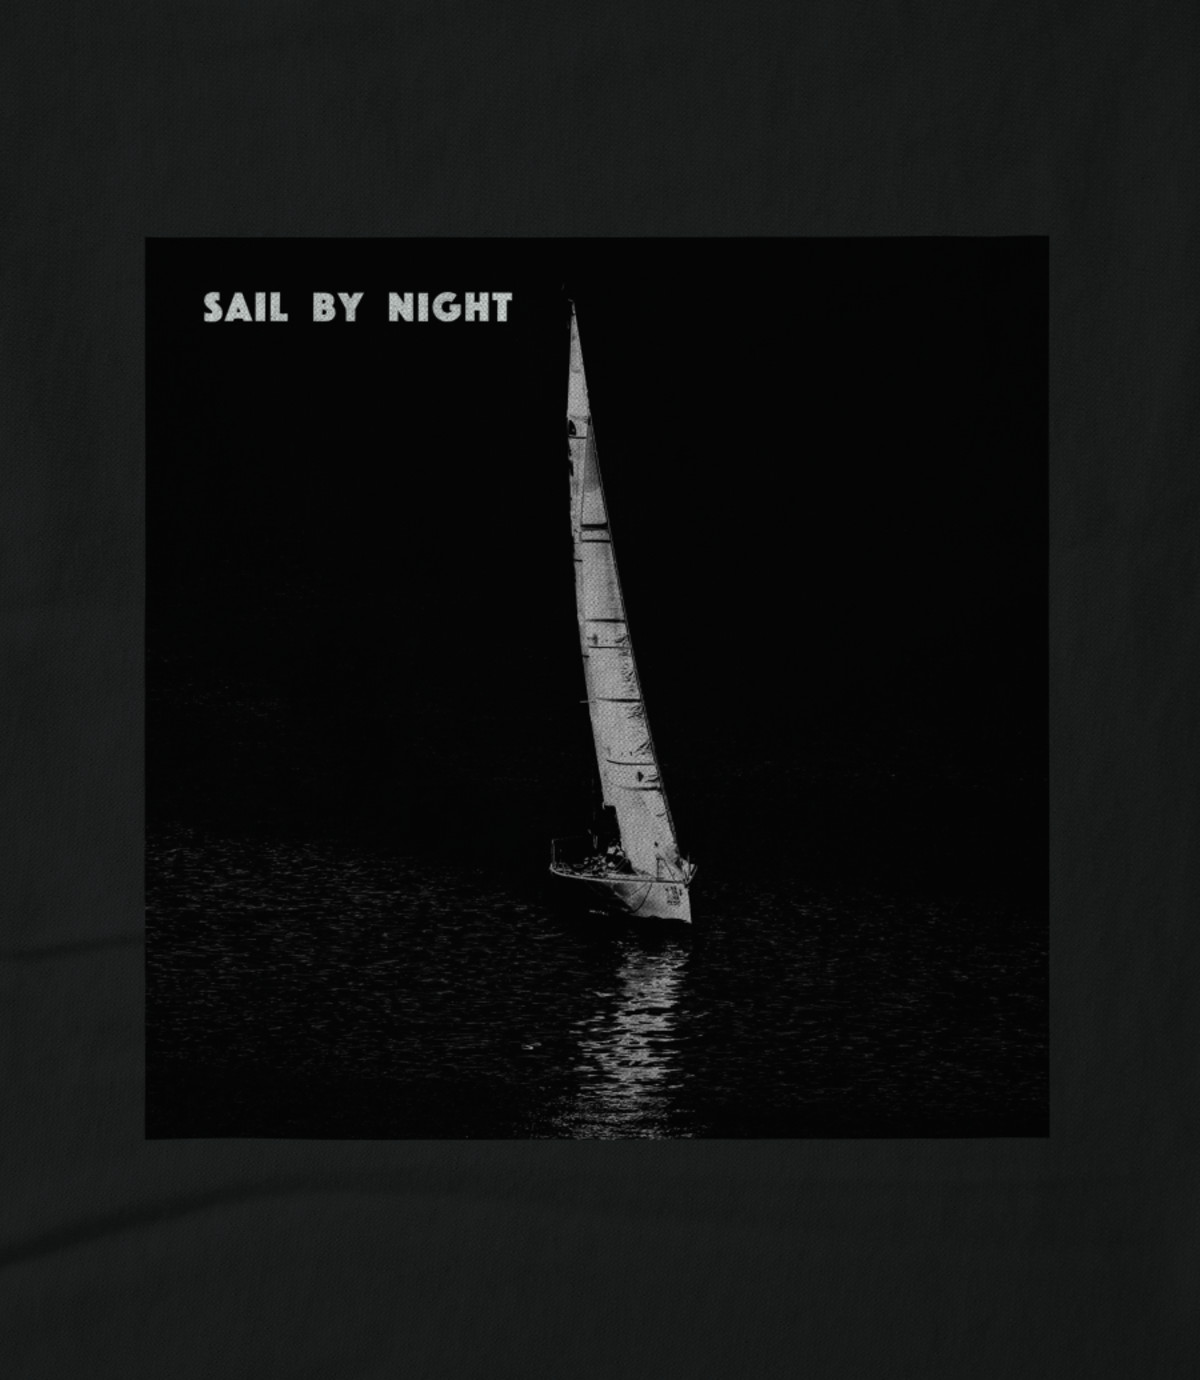 Sail by night solitude 1541870246